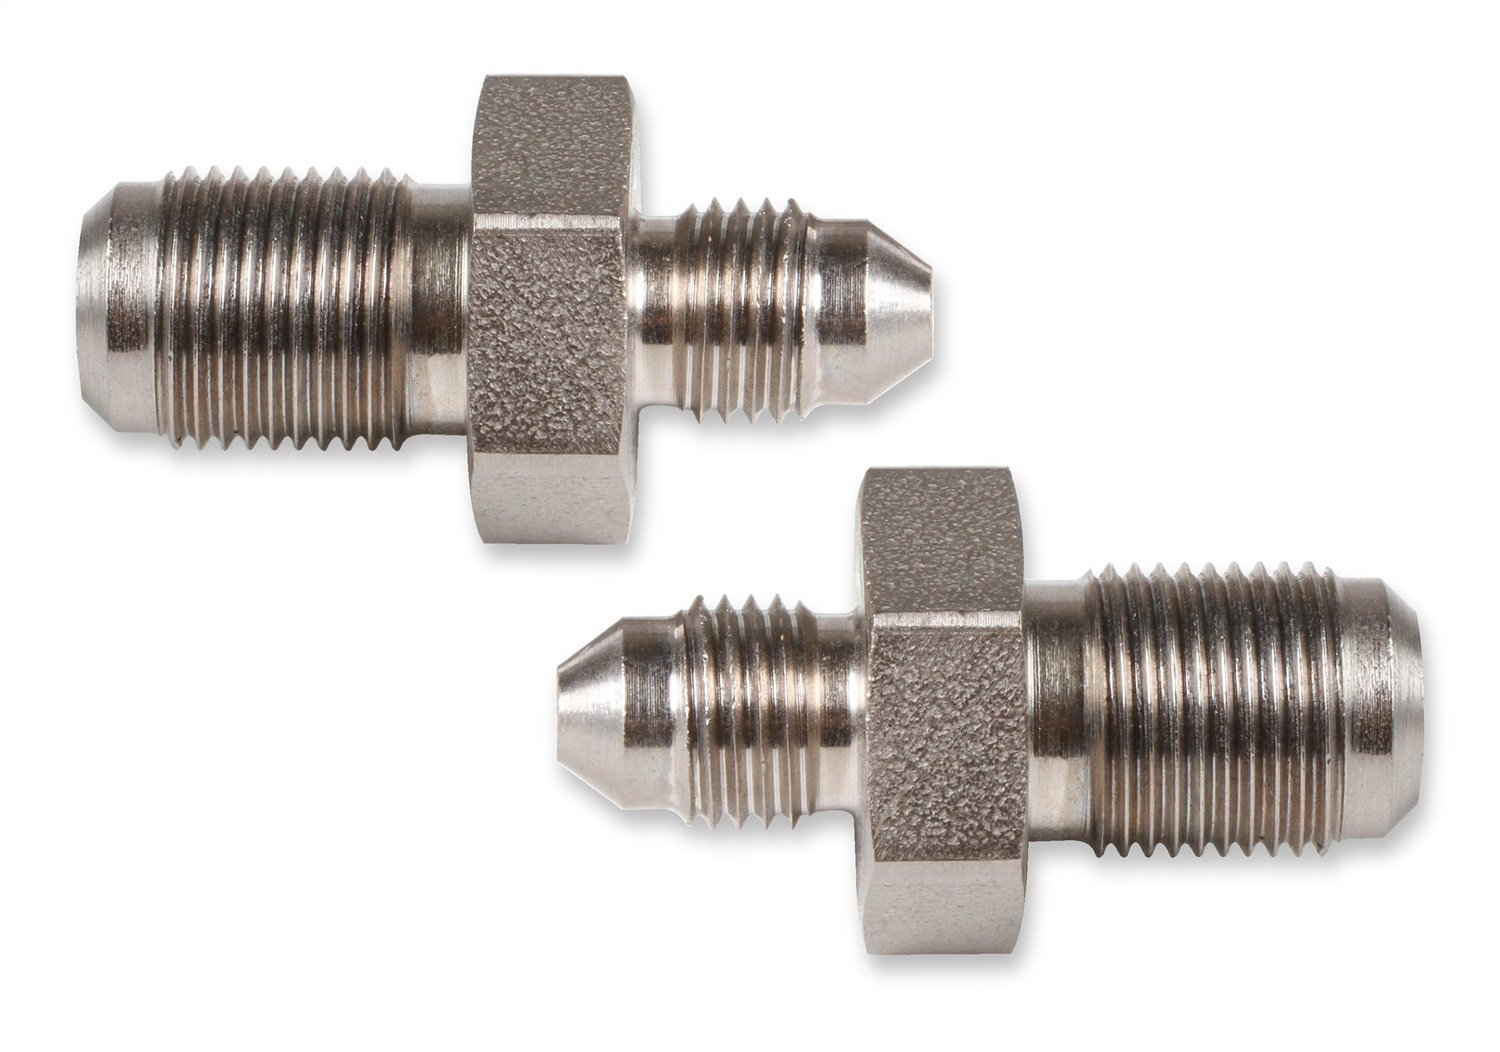 Aeroquip FCM2941 Steel 37-Degree Male to Metric Flare Brake Adapters Pack of 2